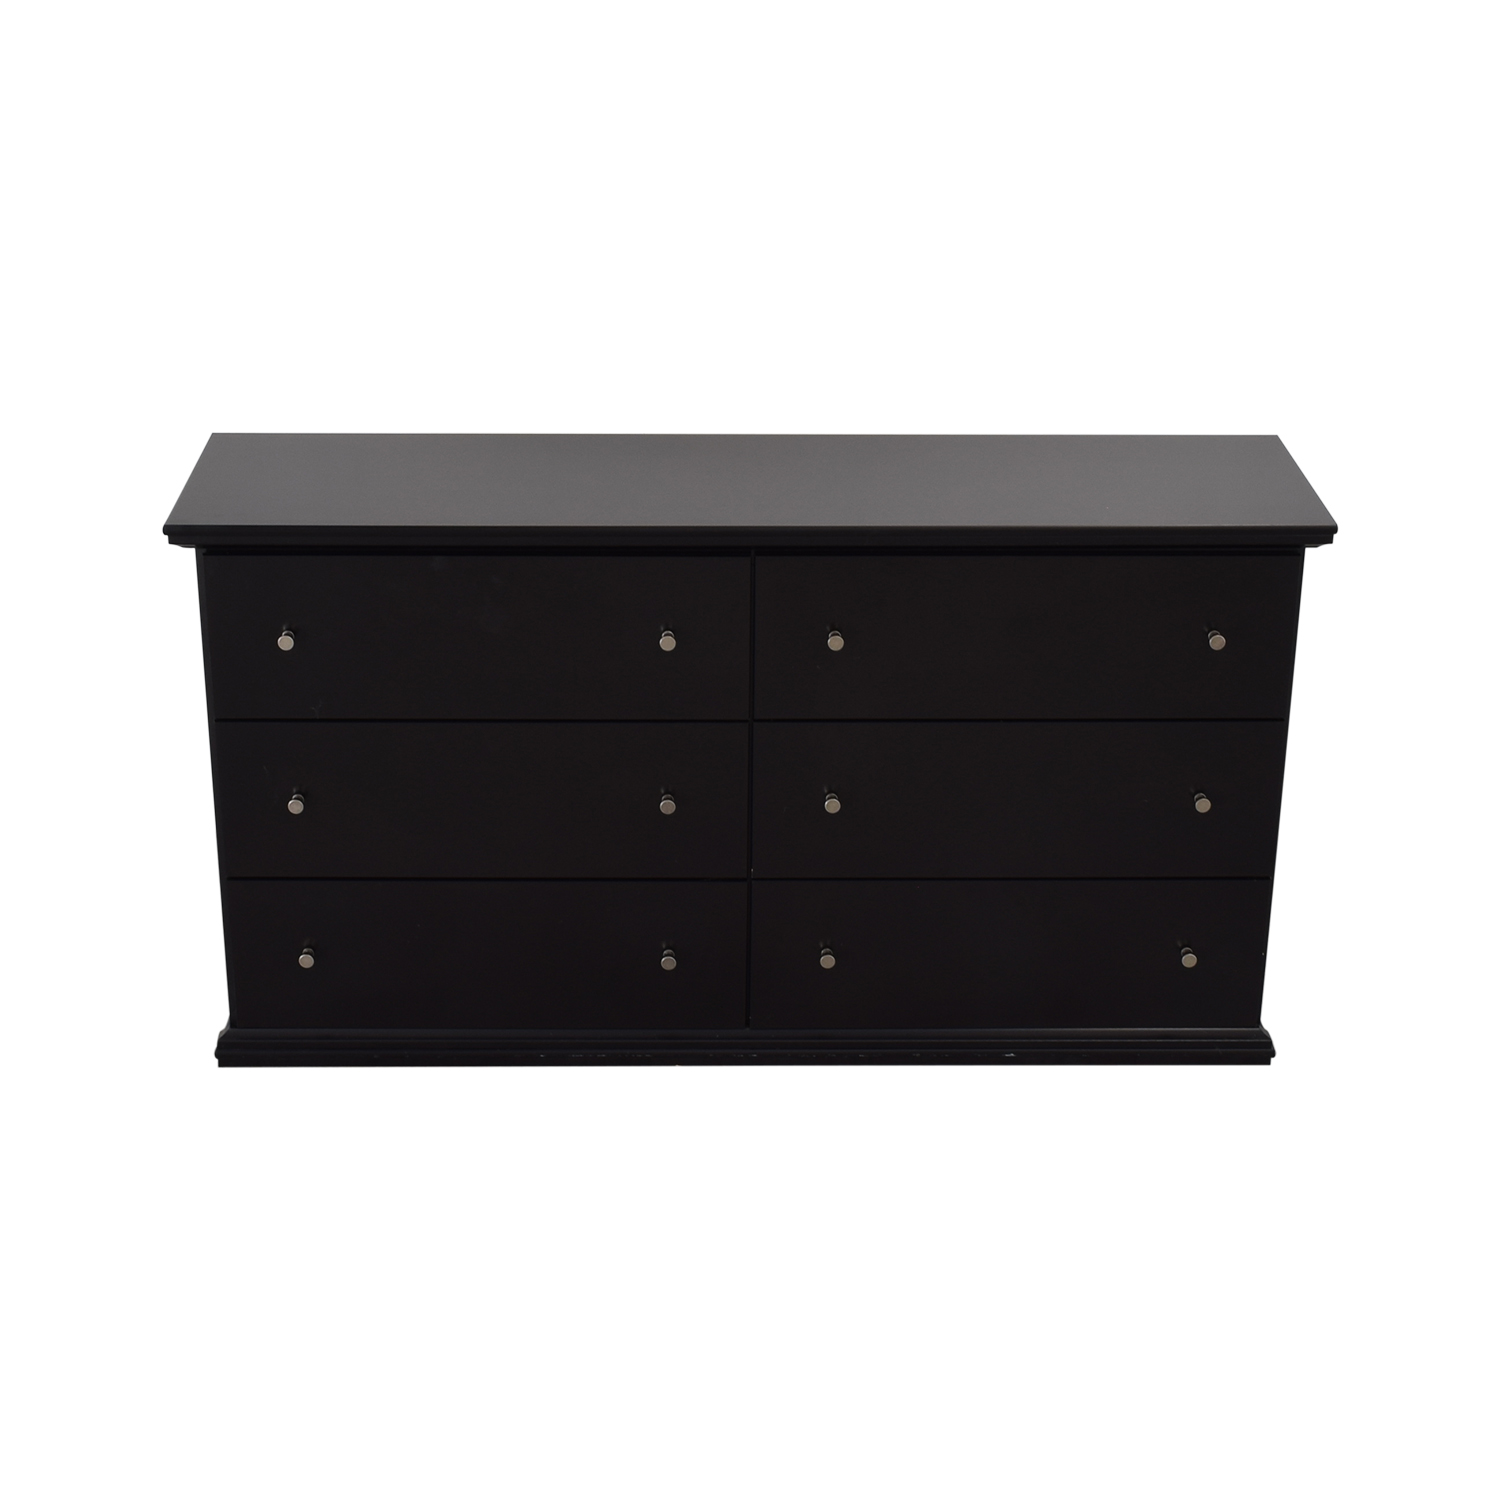 Ashley Furniture Ashley Furniture Black Six-Drawer Dresser